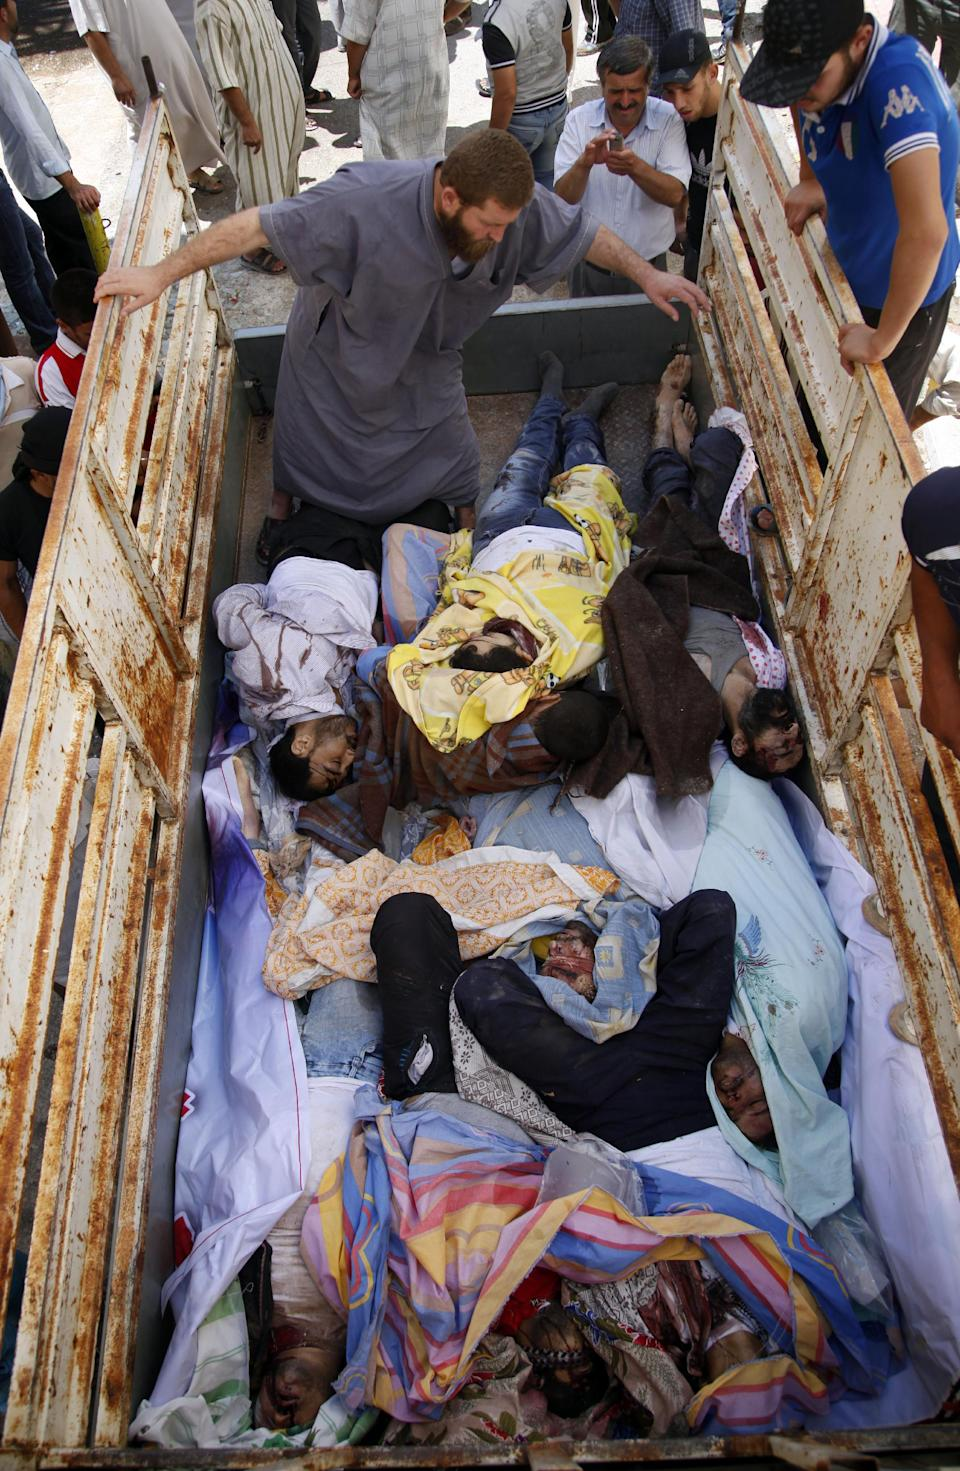 Syrians look at nine bodies of Syrians who were found dead near the town of Anadan outskirts of Aleppo, Syria, Monday, Aug. 6, 2012. (AP Photo)